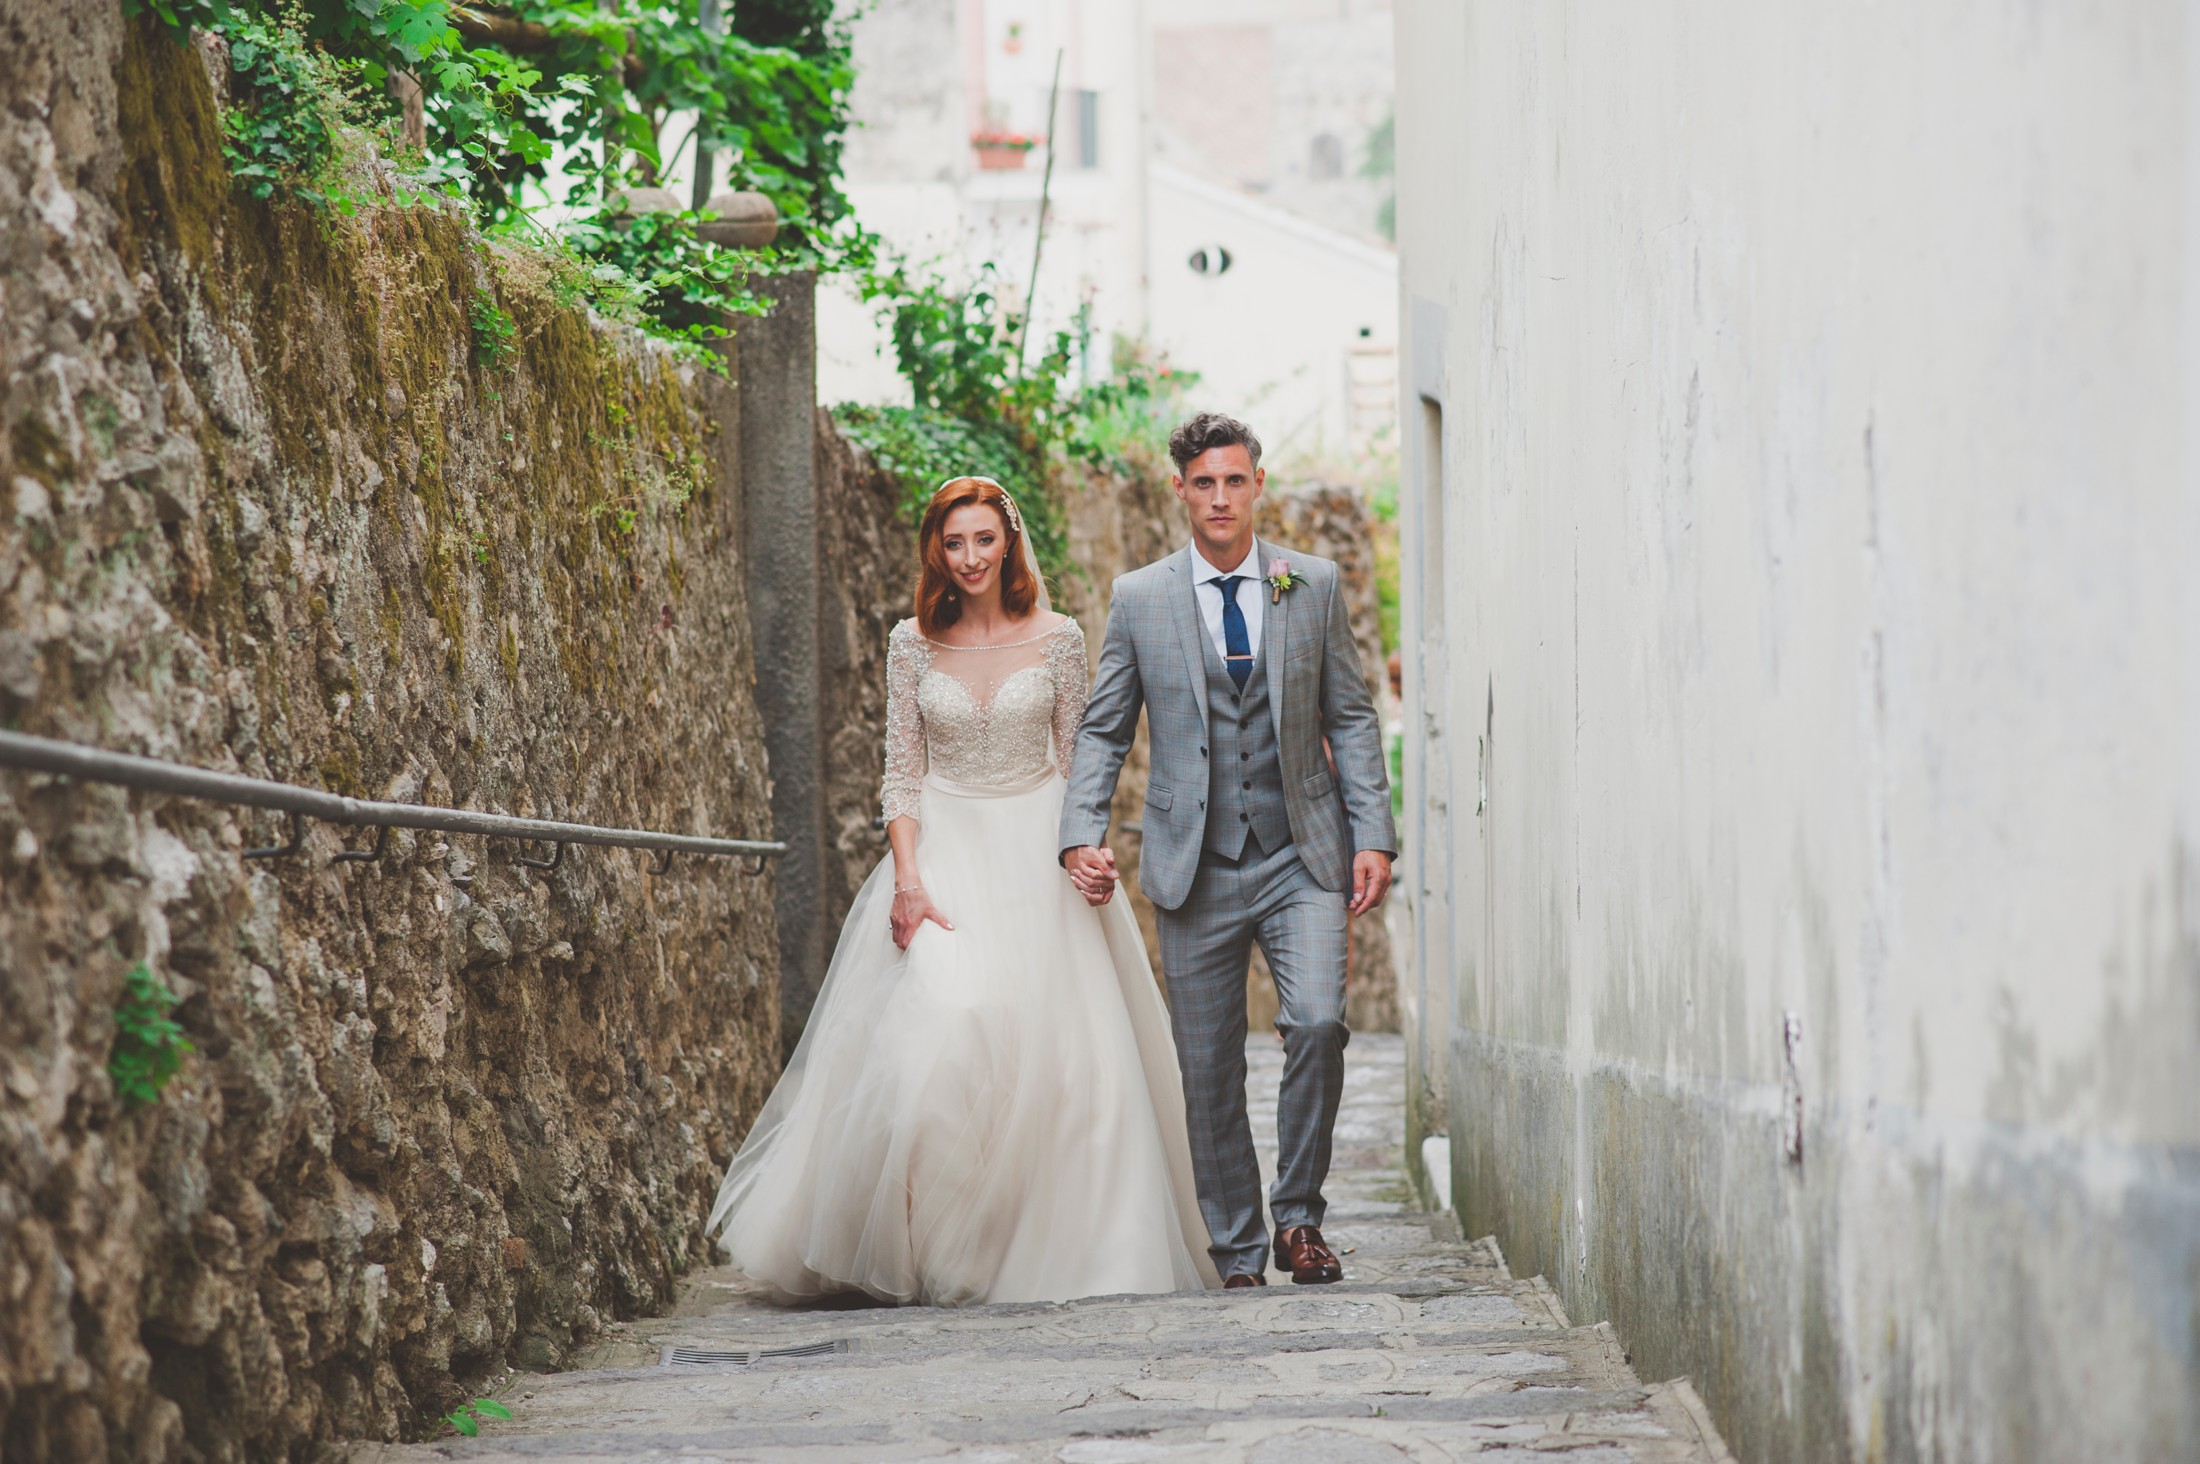 ravello wedding bride and groom walking together